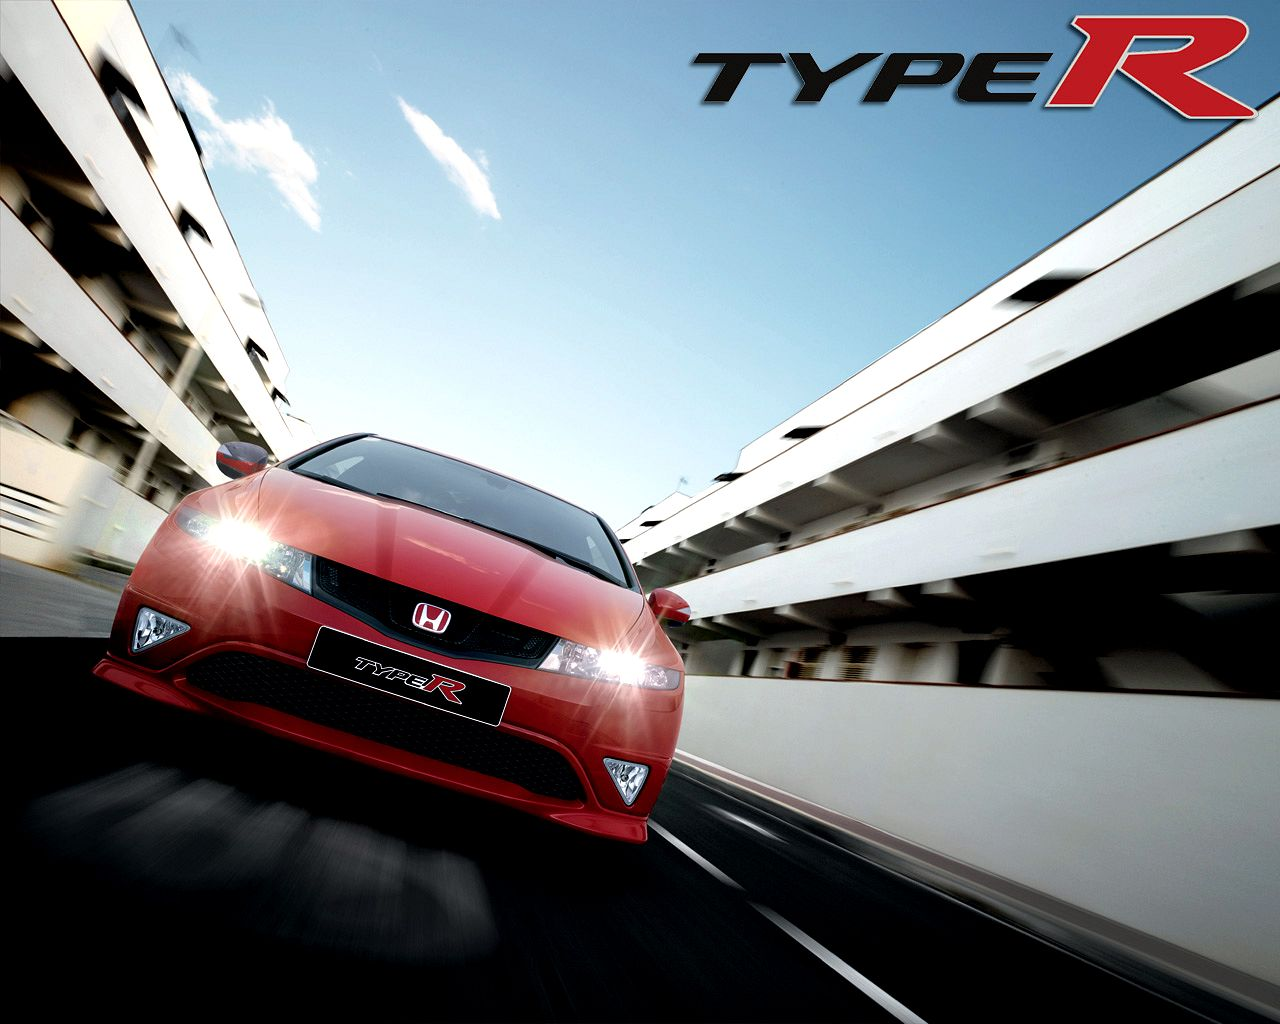 Honda Phone Wallpapers Eu Honda Civic Type R Wallpaper 1280x1024 Id 333